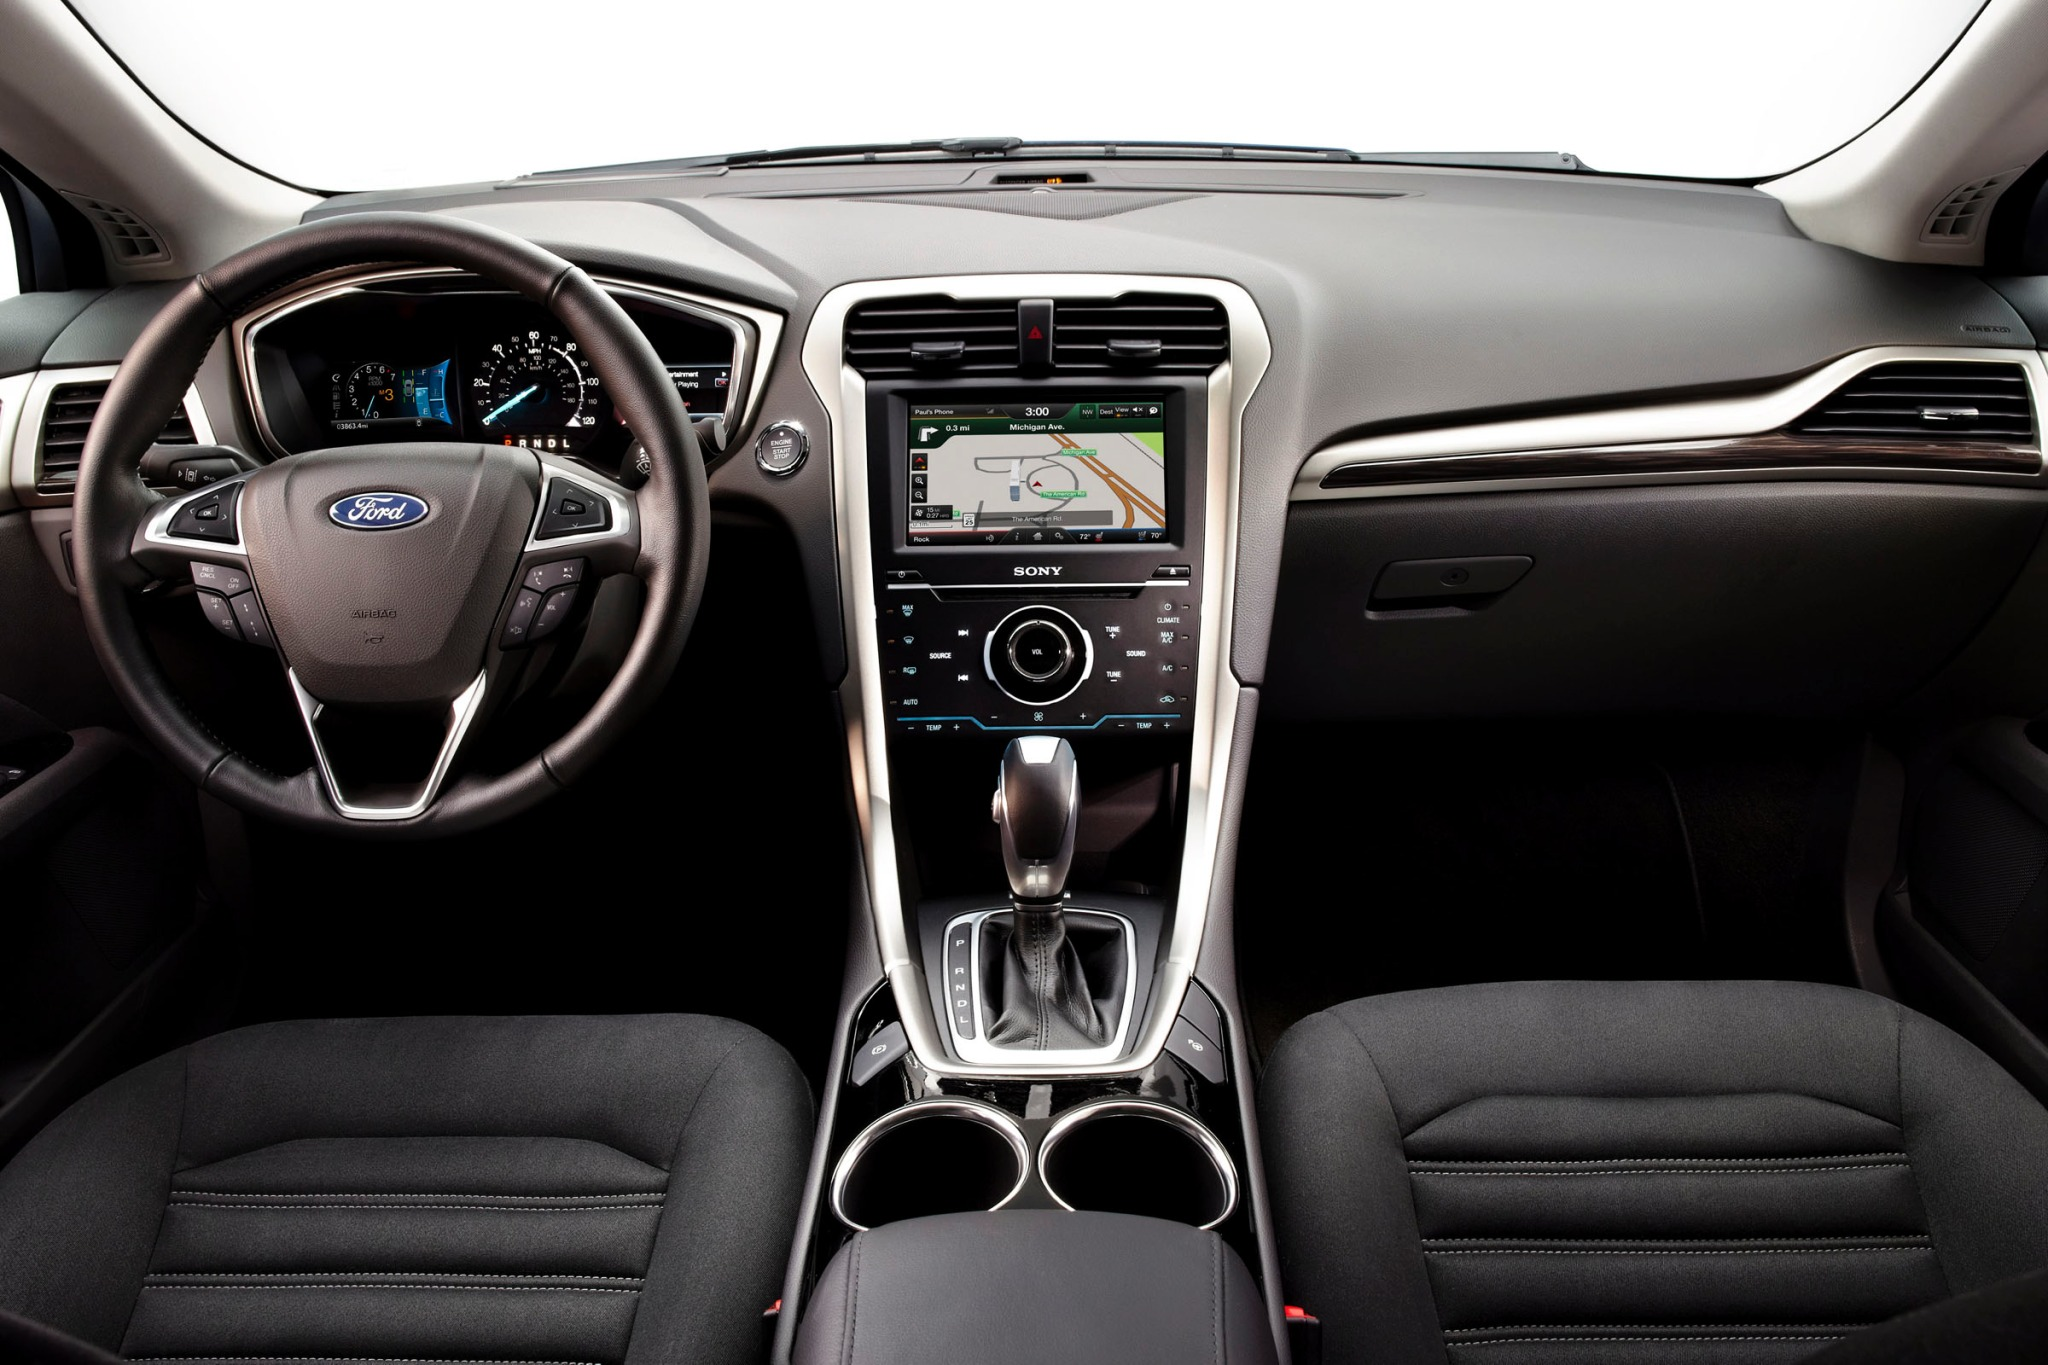 2013 Ford Fusion Hybrid S interior #8